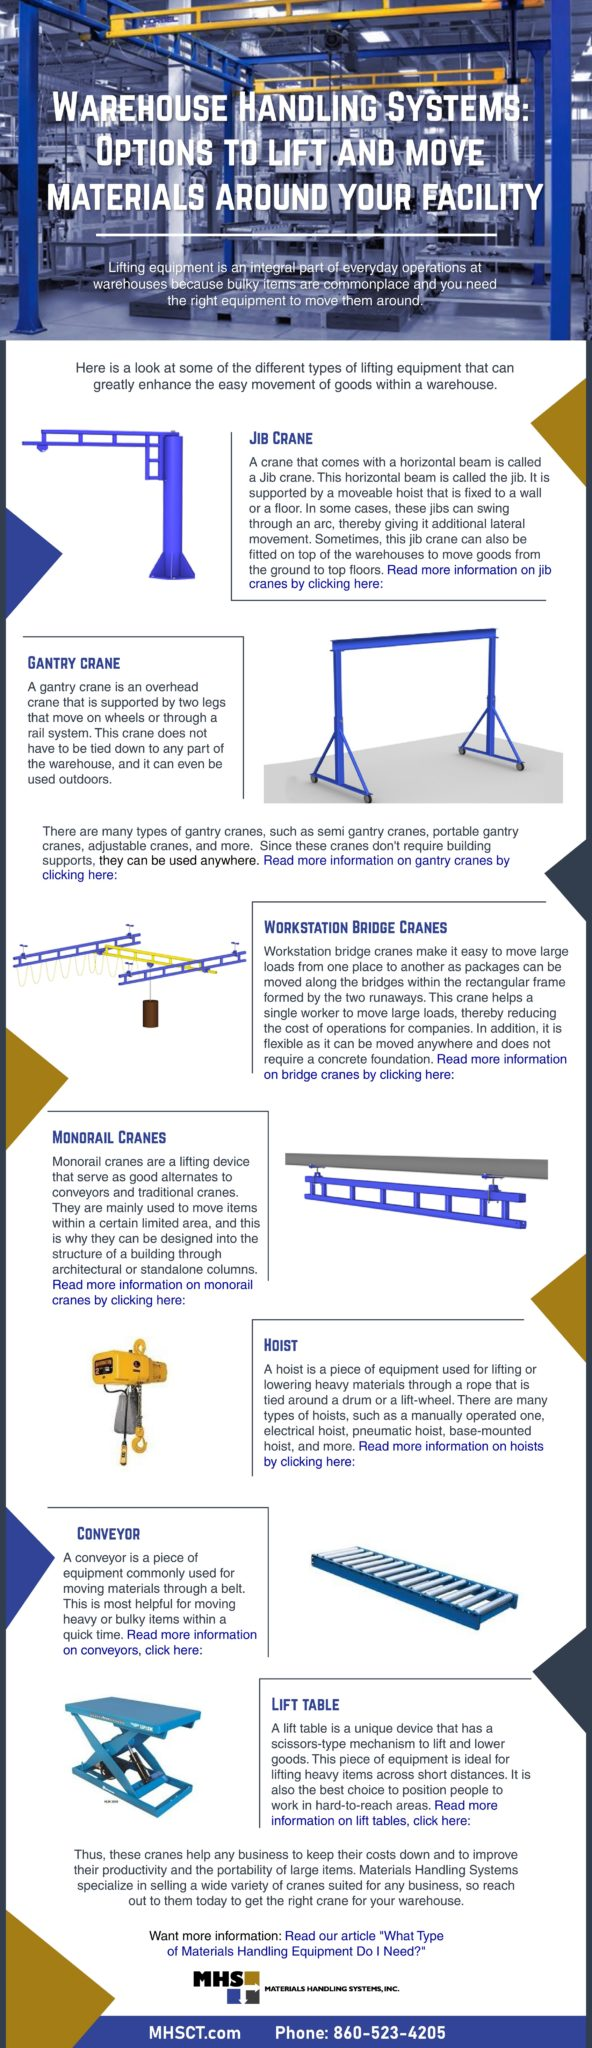 Warehouse Handling Systems Infographic